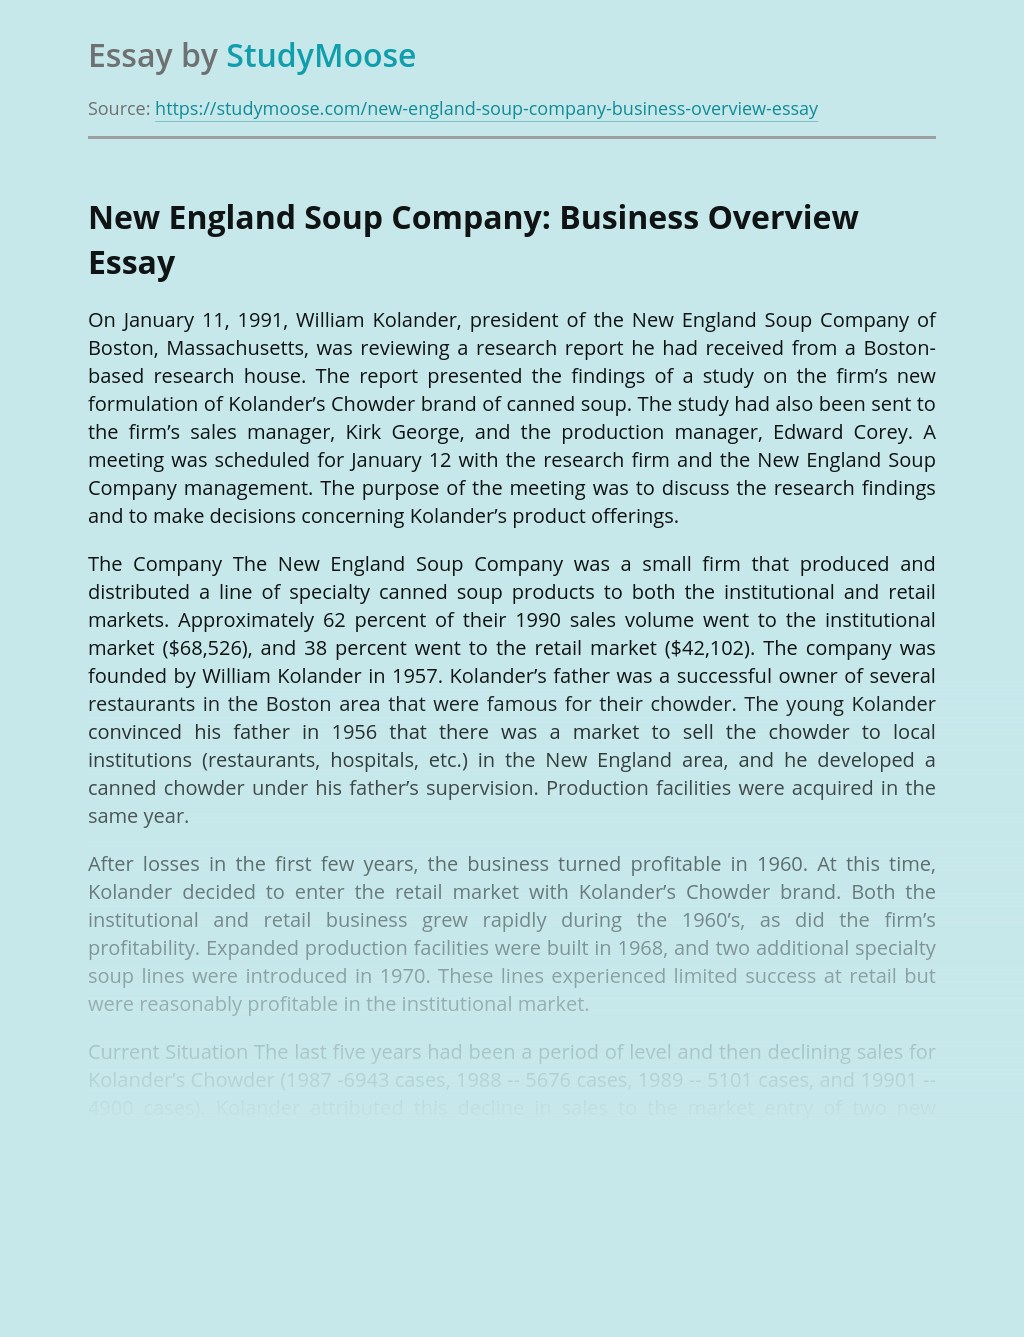 New England Soup Company: Business Overview